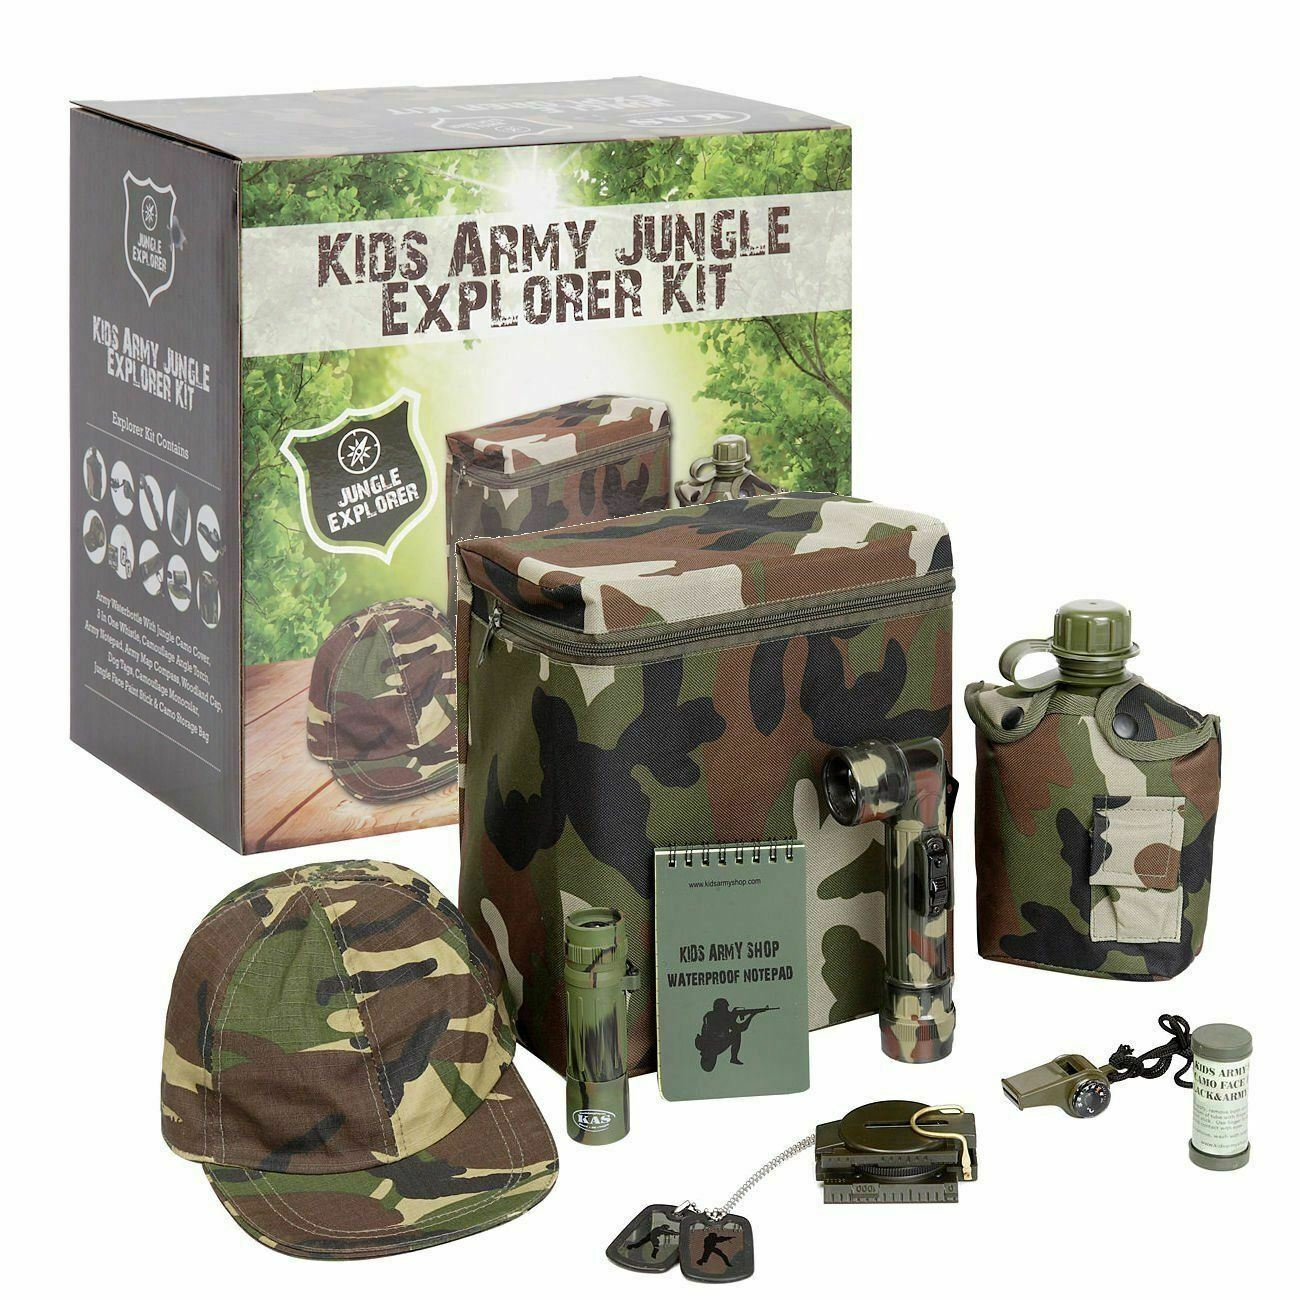 Camouflage Kit Army Roleplay Camo Net Tent Pegs Kids Army Command Bunker Set